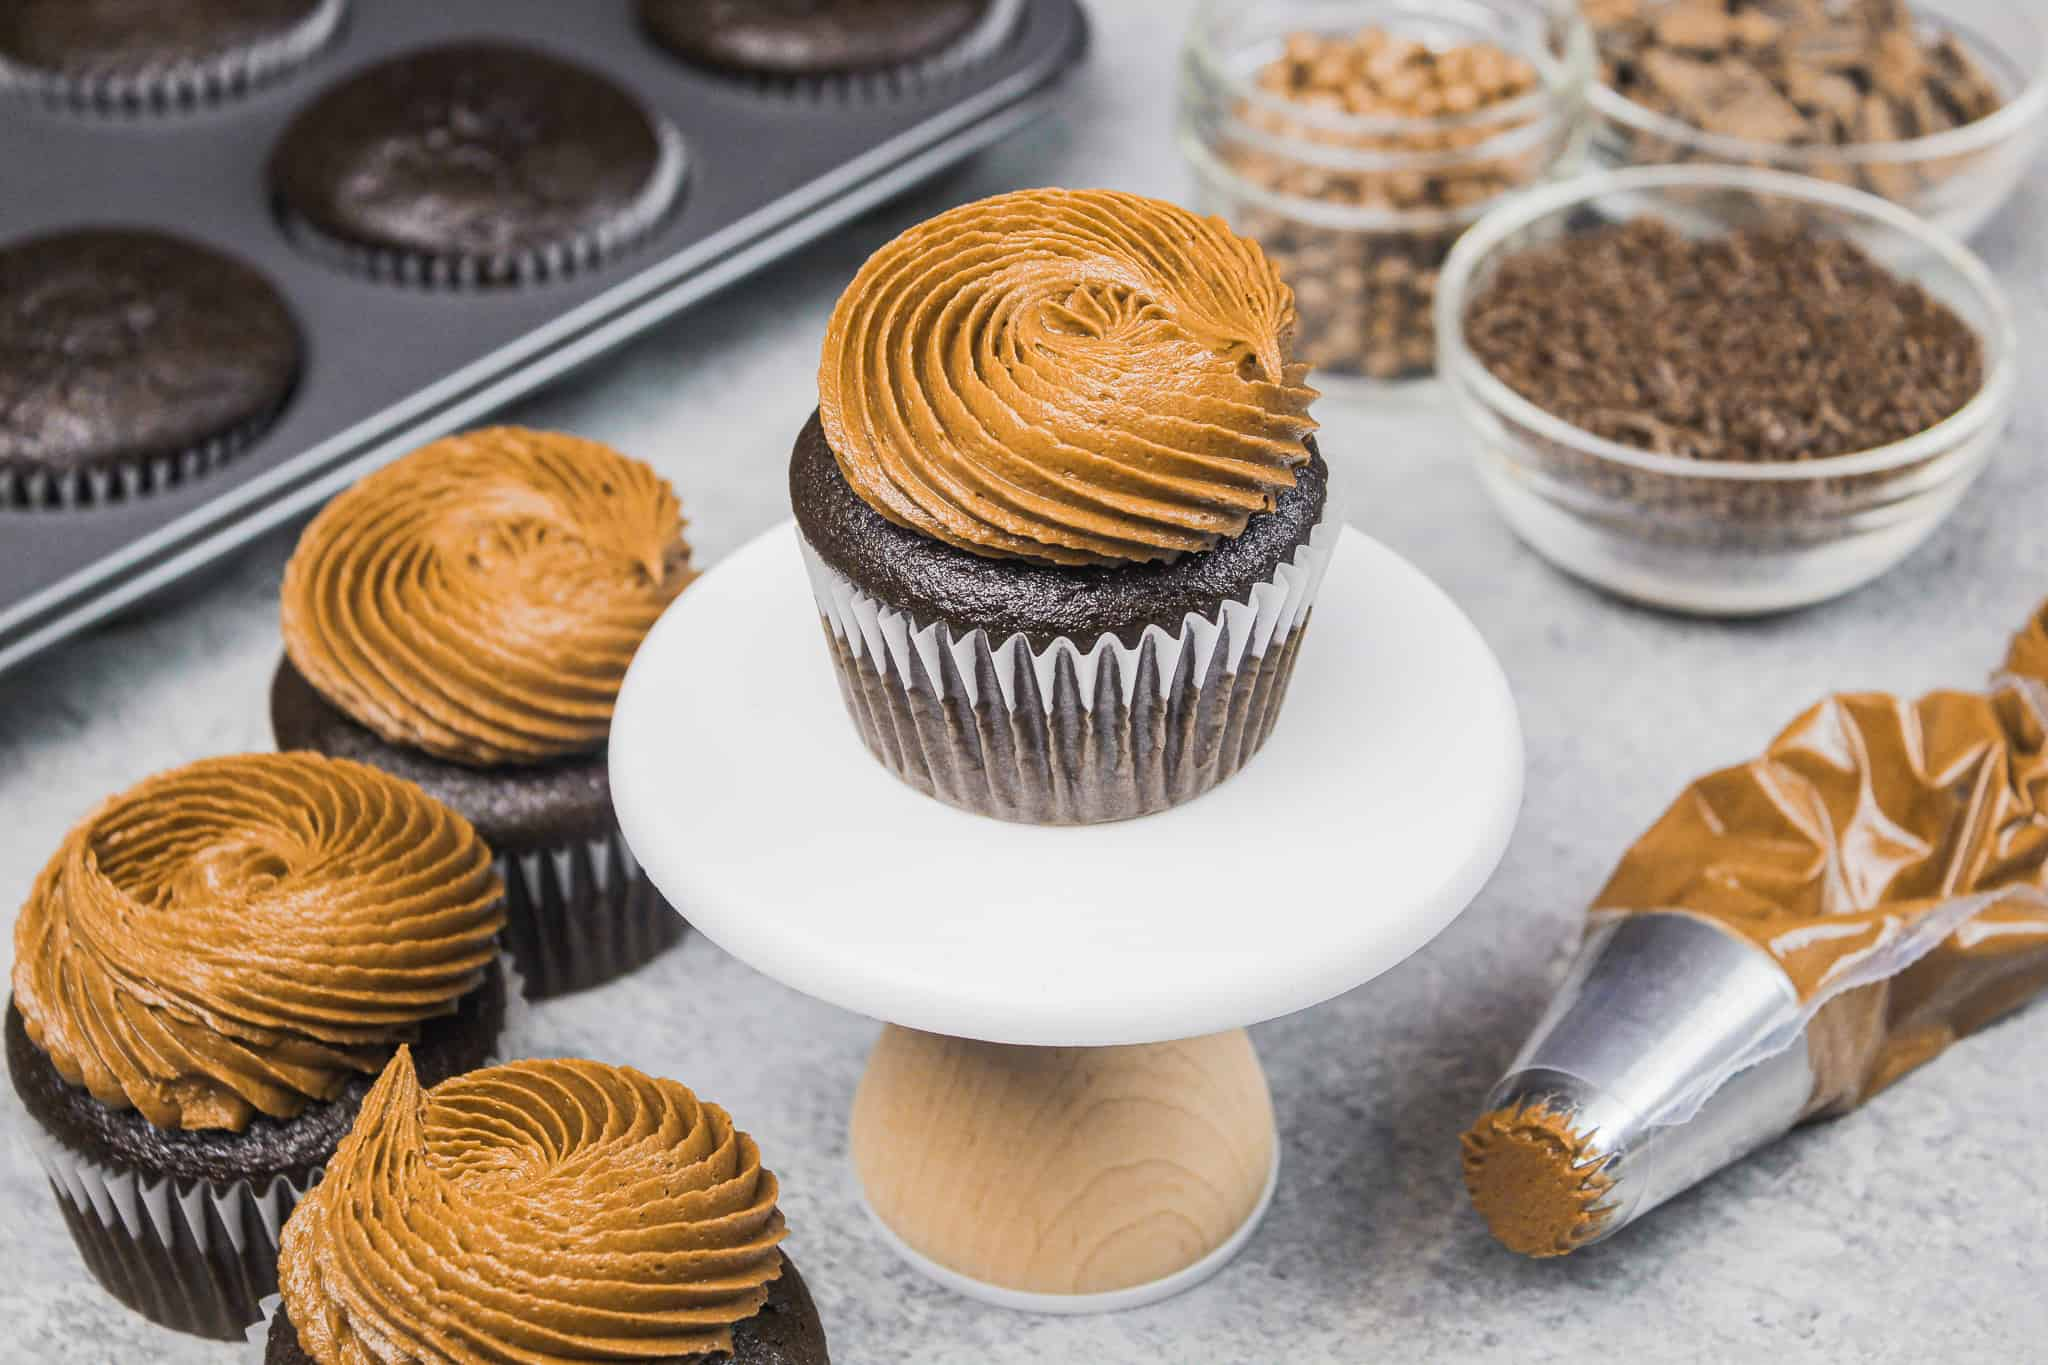 image of gluten free chocolate cupcakes frosted with a swirl of dark chocolate frosting